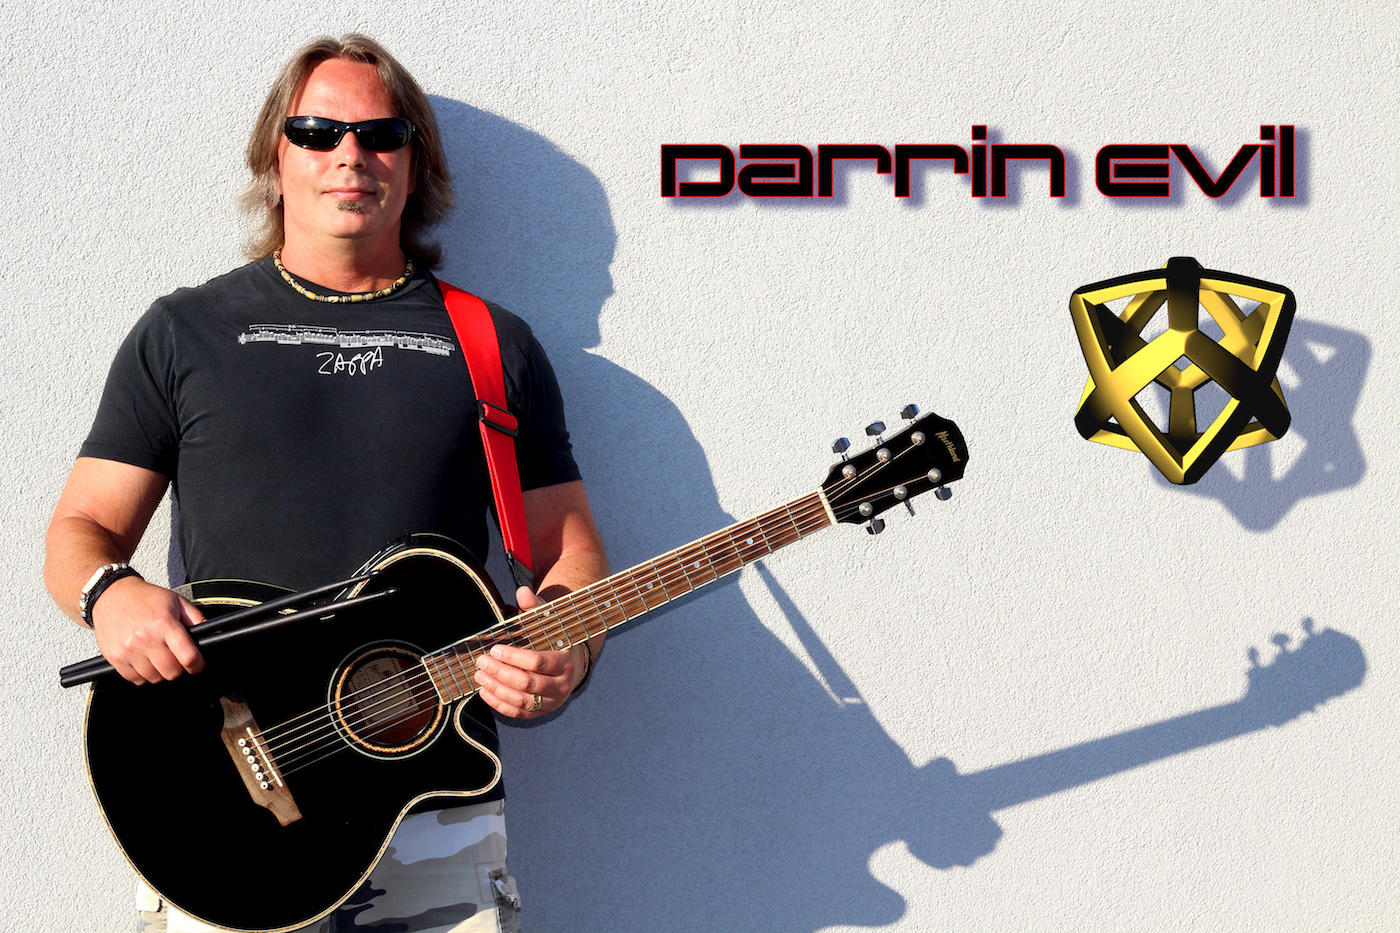 {Behind The Music} Darrin Evil on You Too